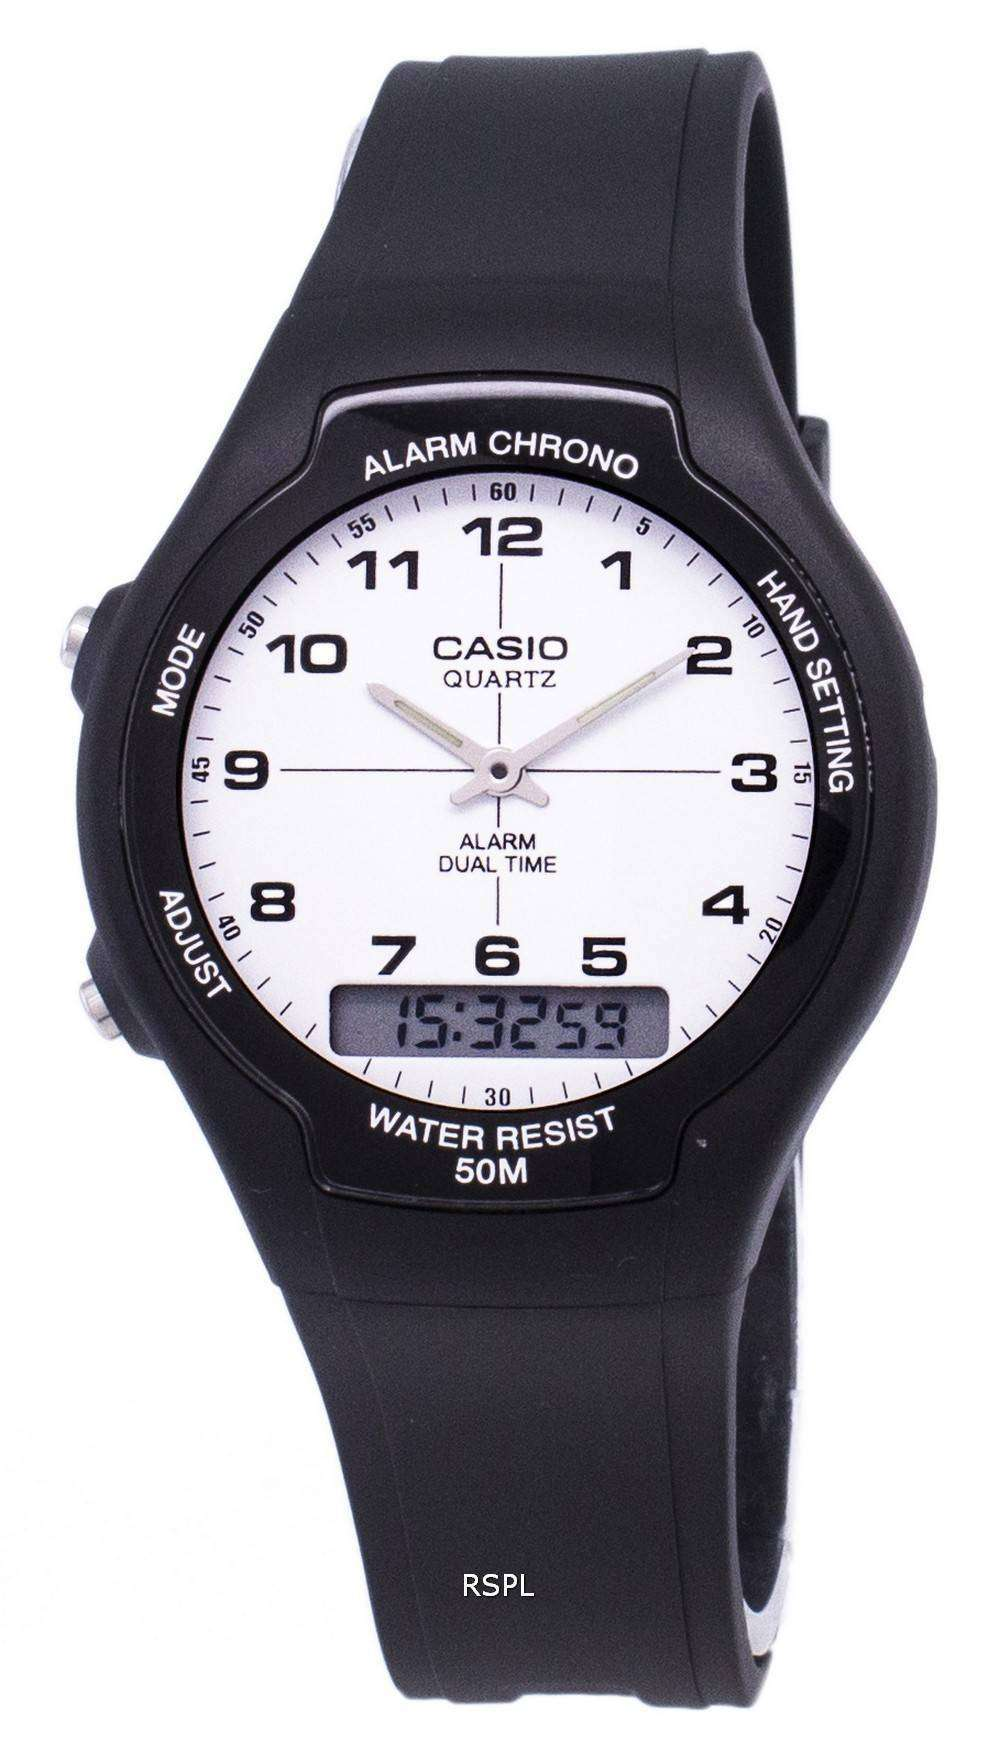 Tag Heuer Uk >> Casio Analog Digital Dual Time AW-90H-7BVDF AW-90H-7BV Mens Watch - CityWatches.co.uk